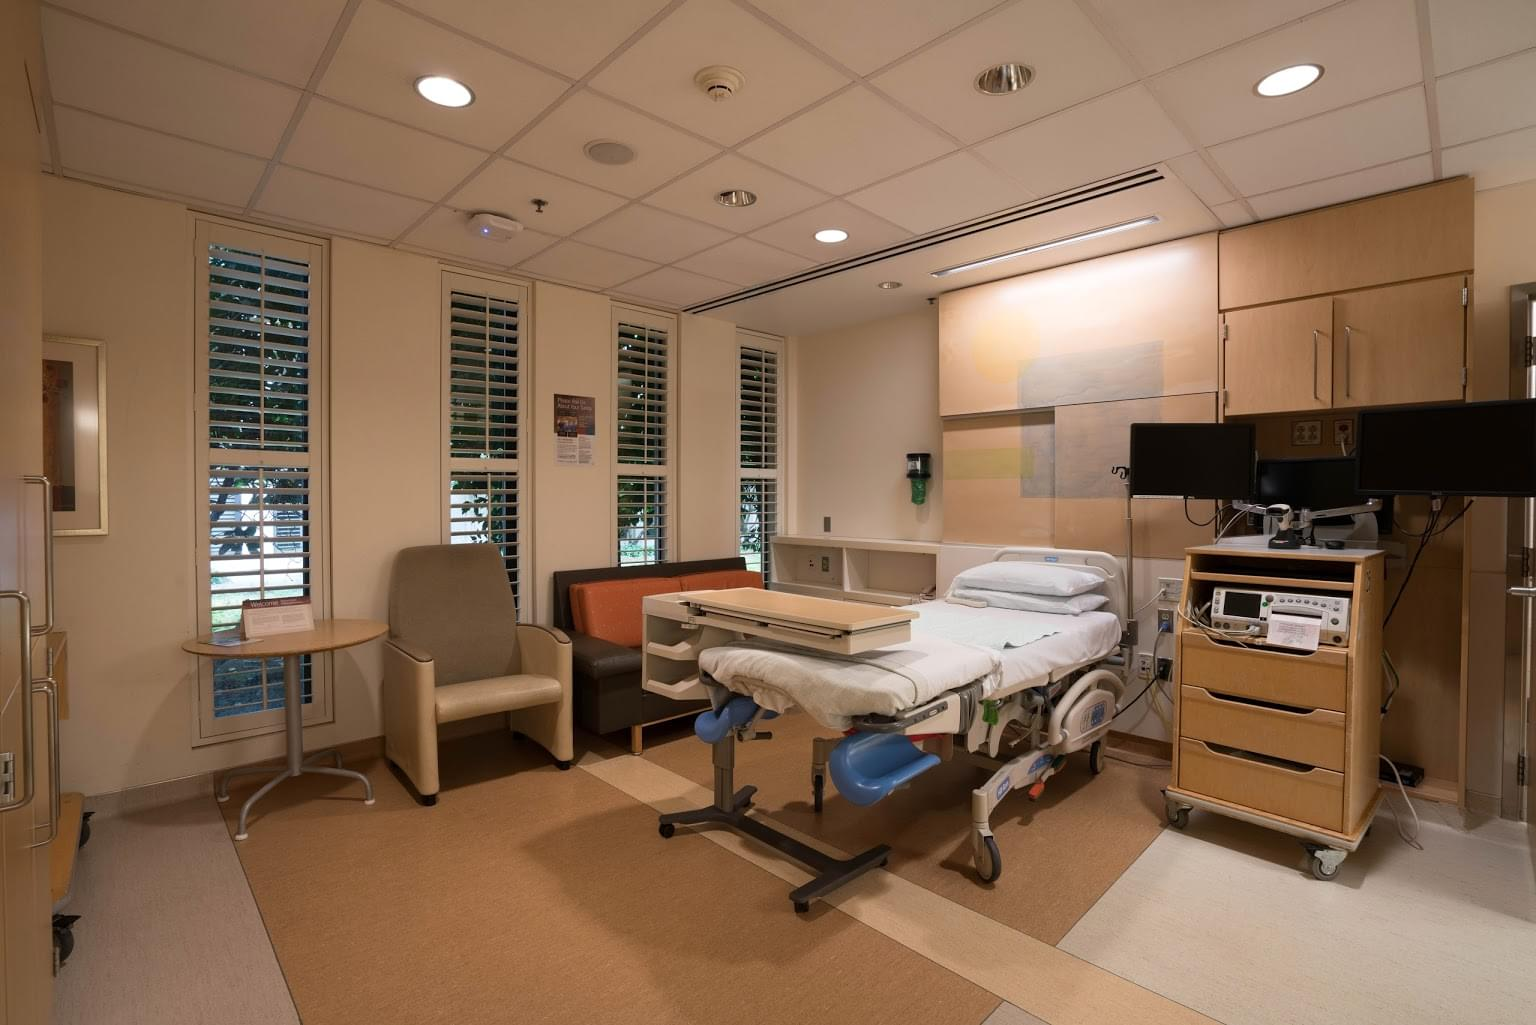 The Birth Center at Valley Medical Center – Renton, WA – See-Inside Obstetrician-Gynecologist